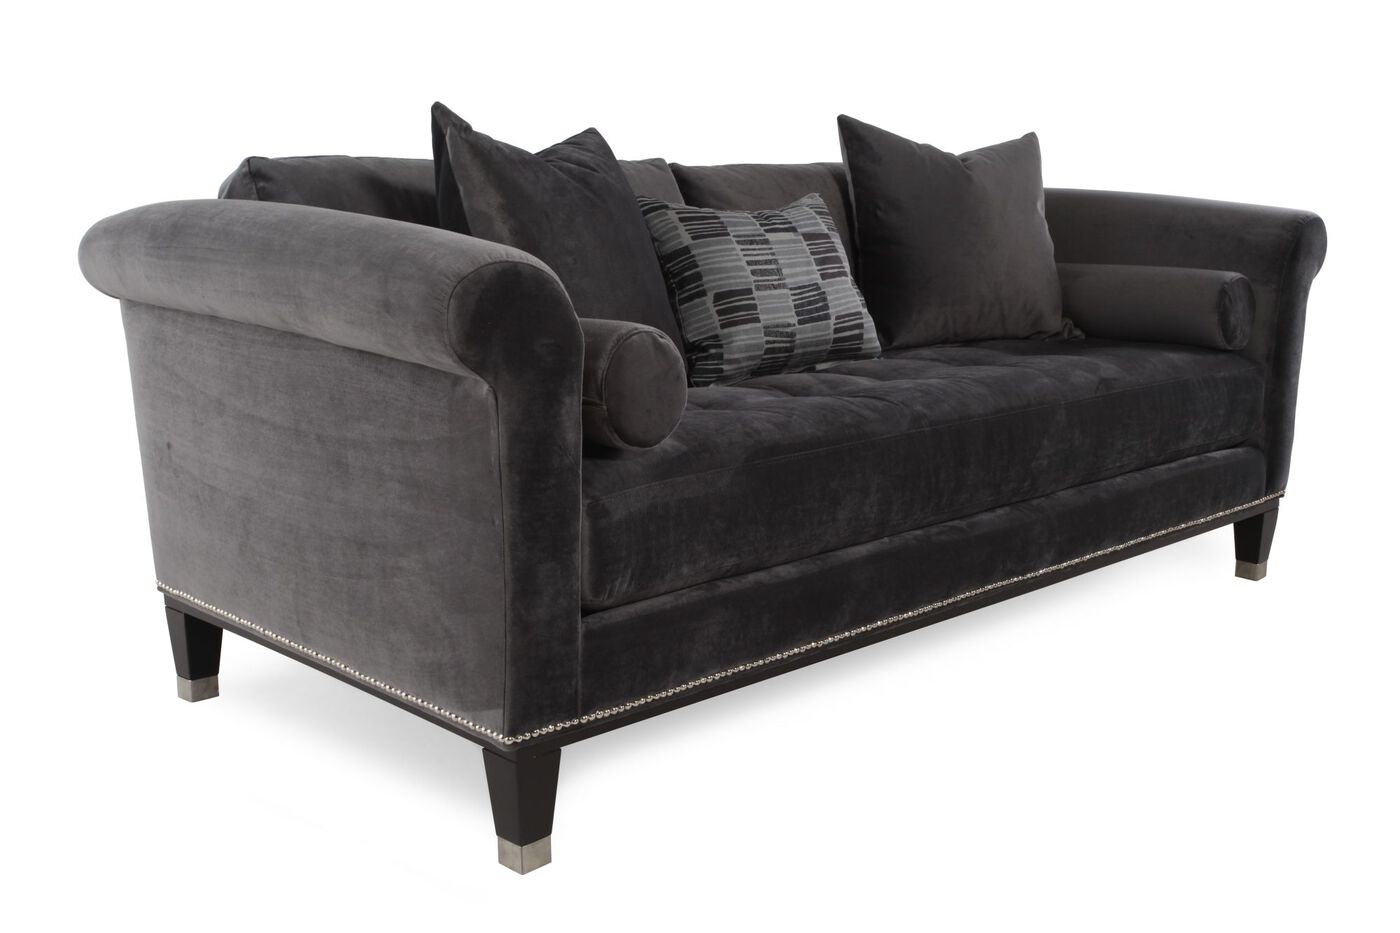 Tufted low profile 91 sofa in dark platinum mathis for Low height sectional sofa